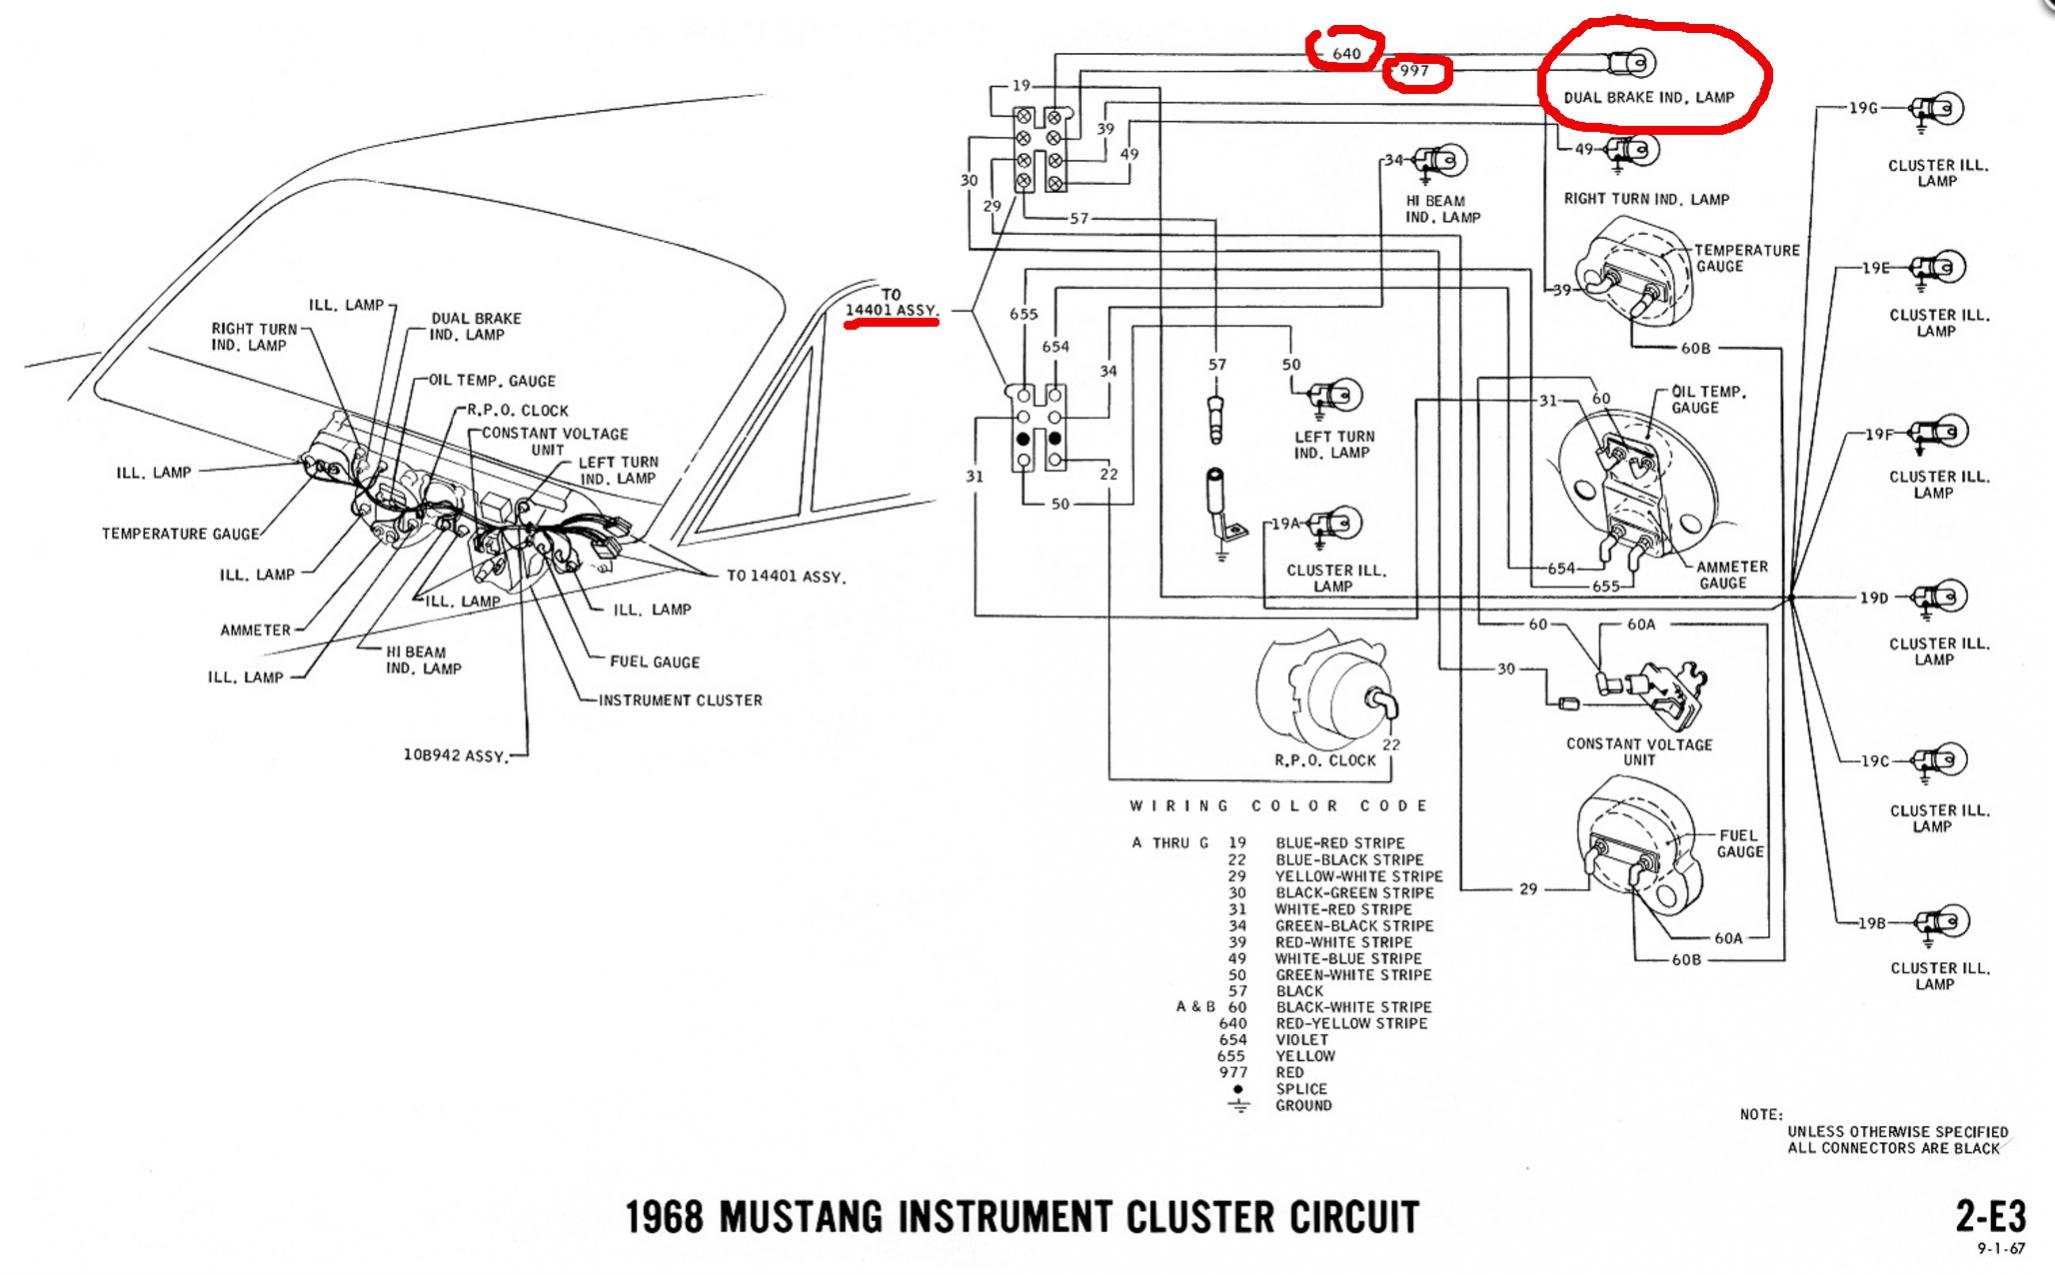 [DIAGRAM_5LK]  Try To Figure This One Out.... | Ford Mustang Forum | Brake Warning Light Wiring Diagram |  | All Ford Mustangs